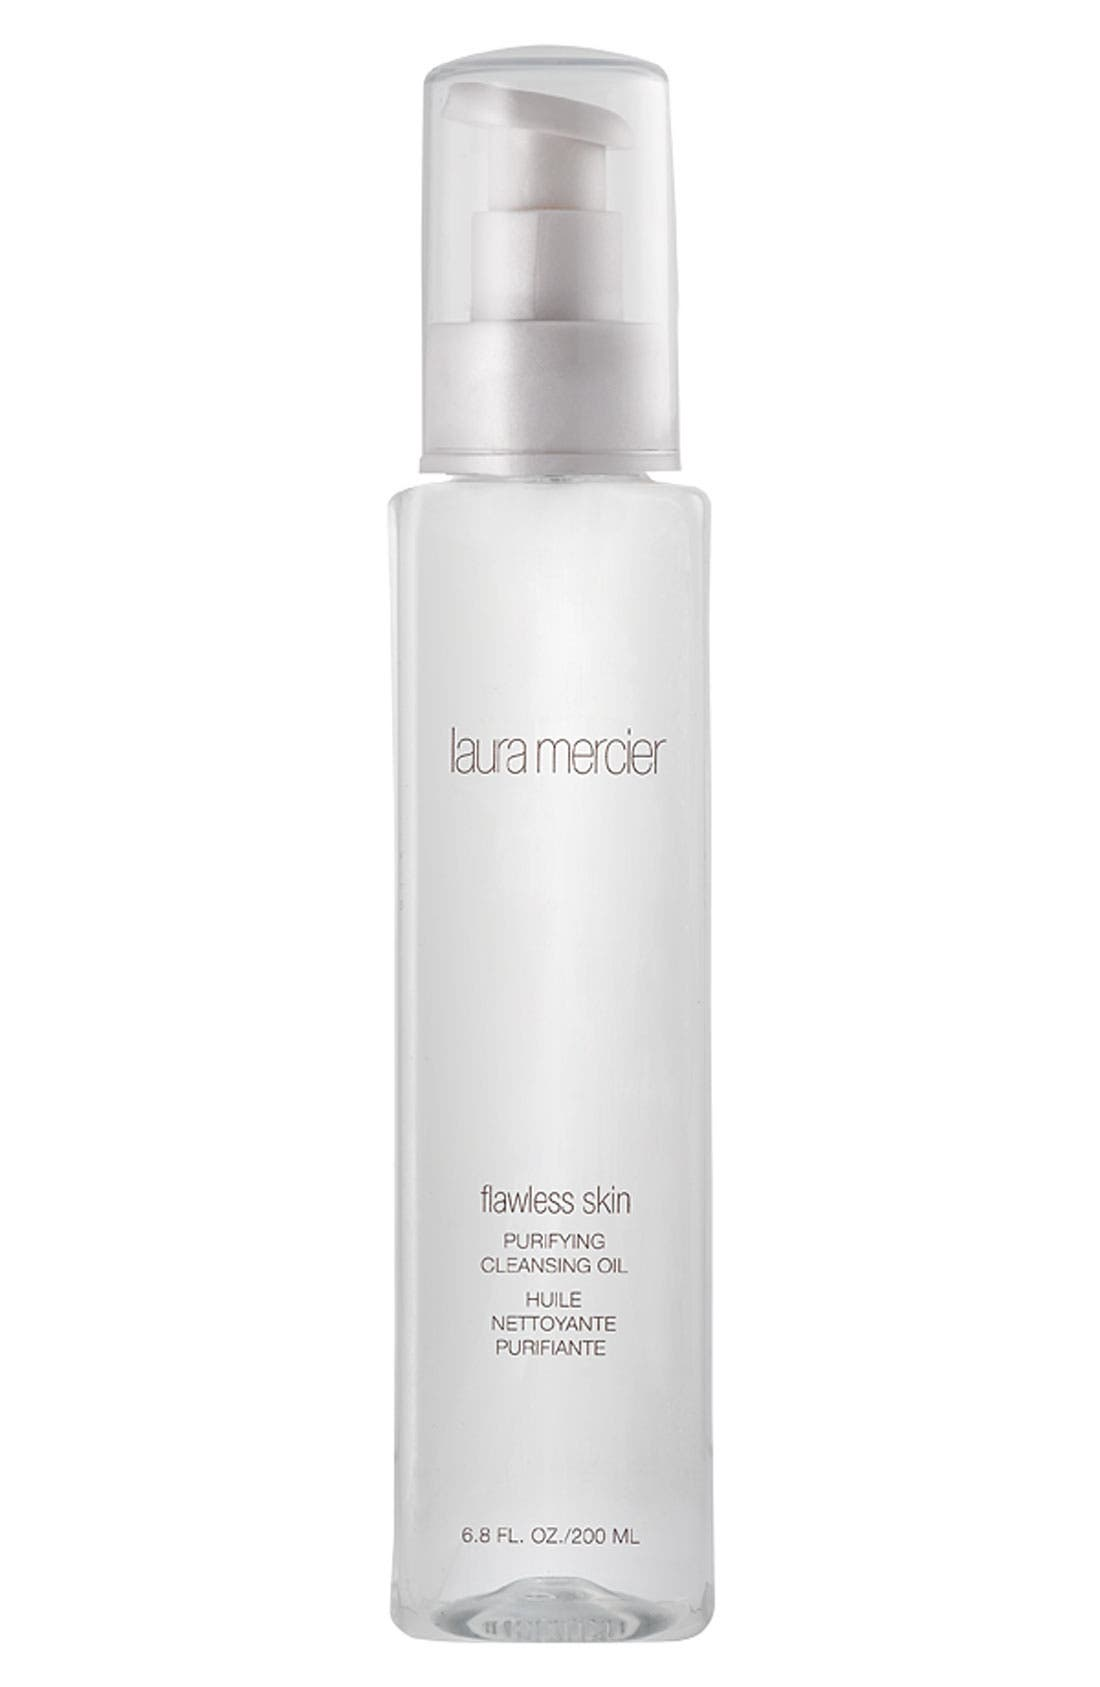 Laura Mercier 'Flawless Skin' Purifying Cleansing Oil